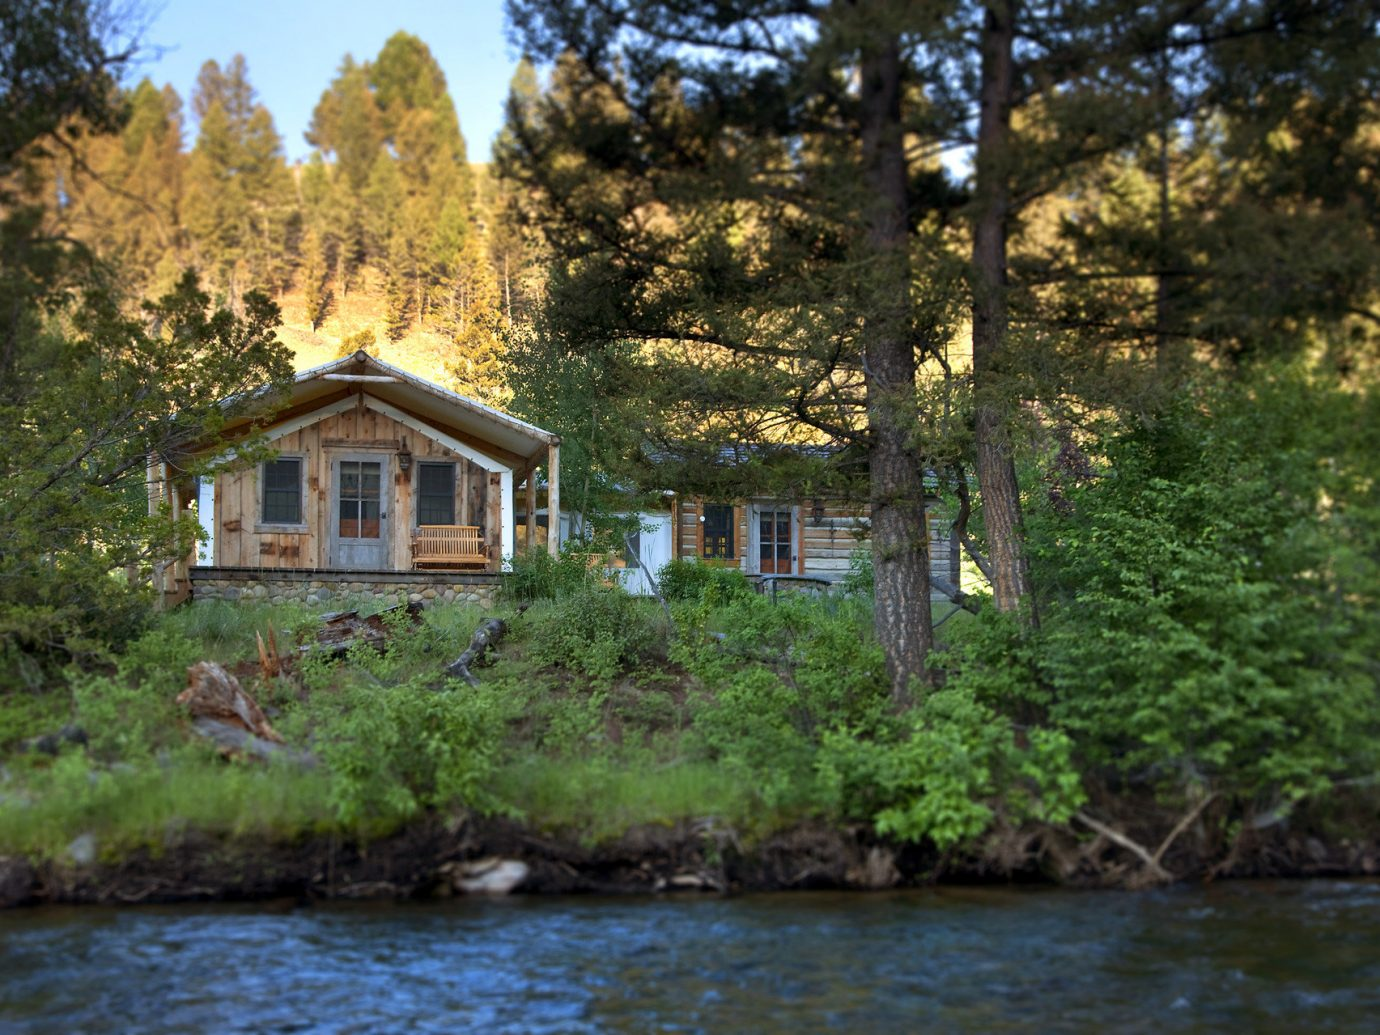 Glamping Hotels Luxury Travel Montana Outdoors + Adventure Trip Ideas tree outdoor water River house estate Lake waterway woodland cottage autumn pond surrounded Forest wooded